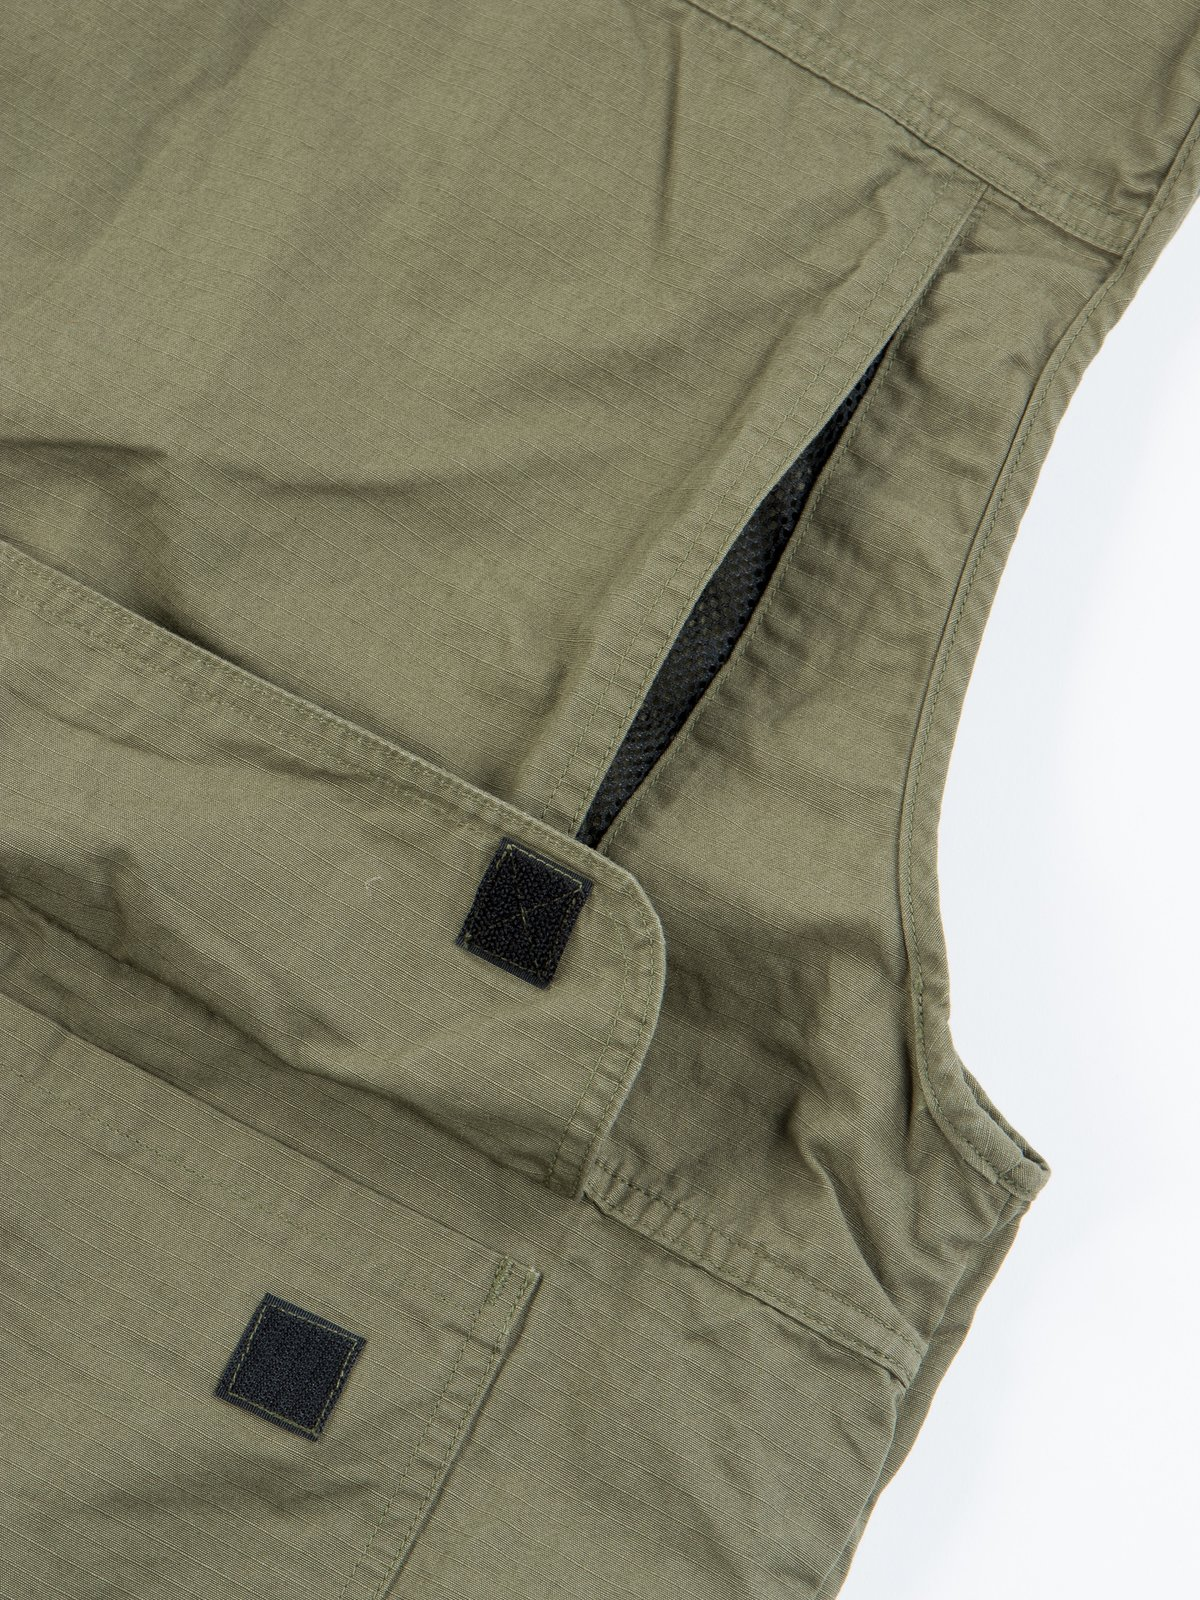 Green Ripstop Utility Vest - Image 8